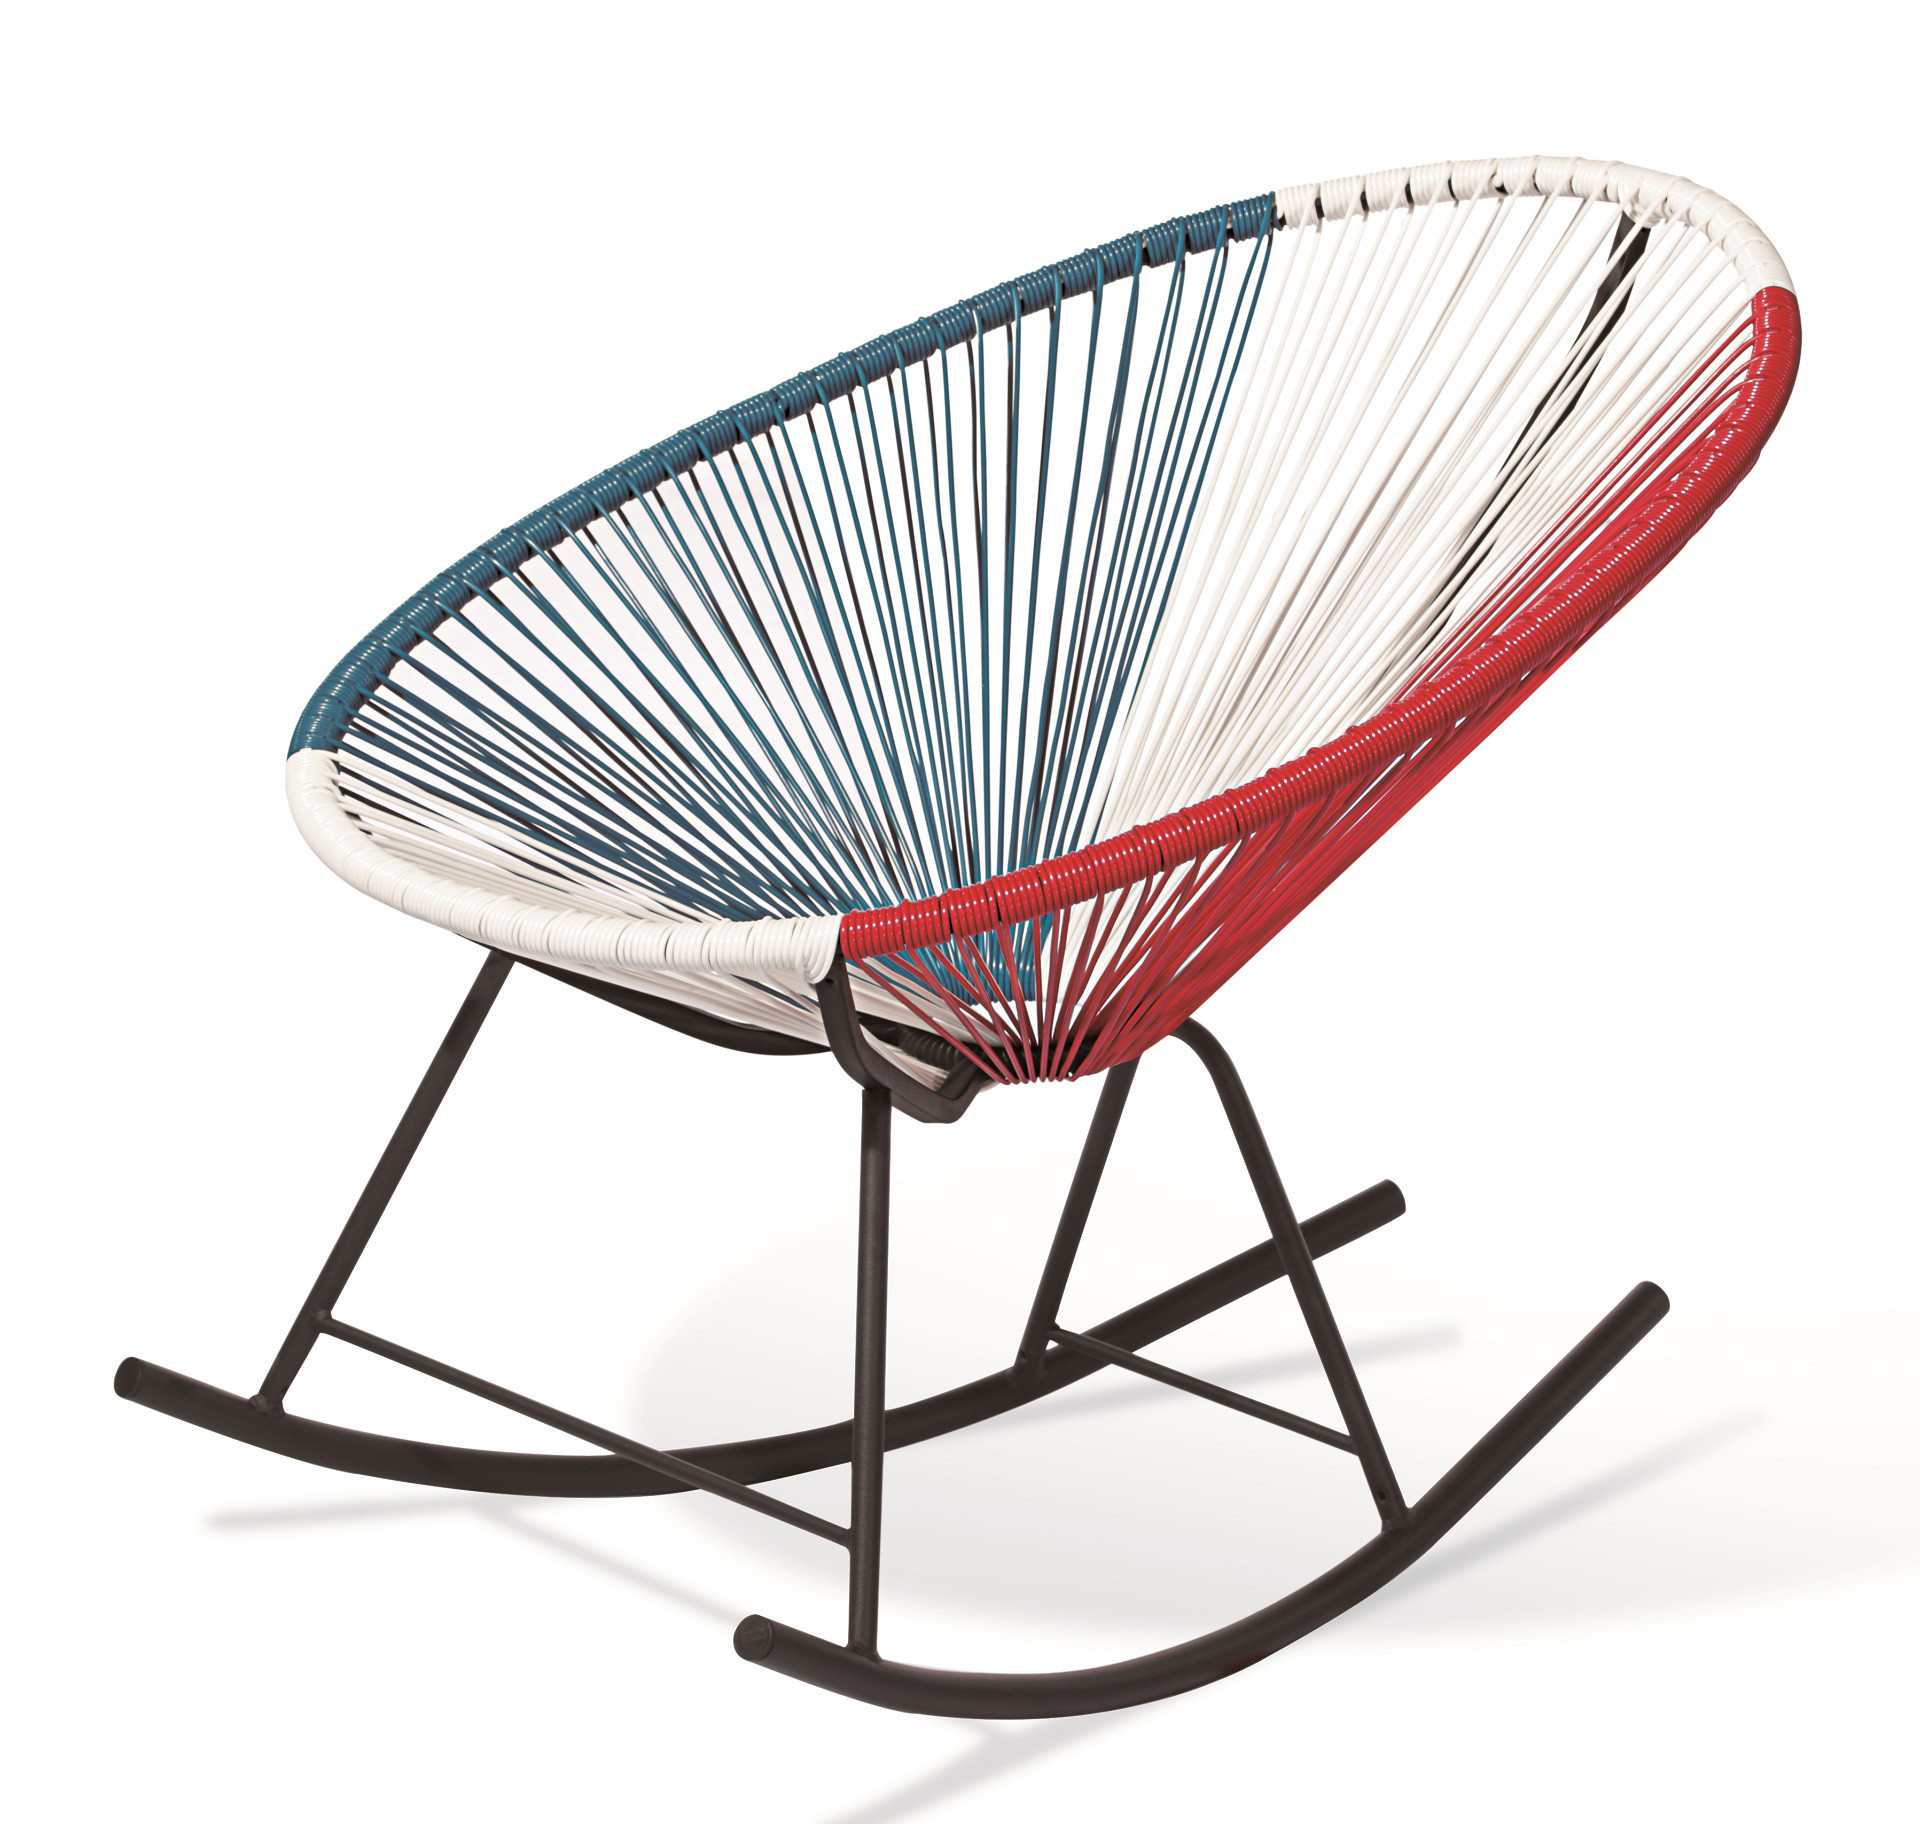 rocker chair sg lazy boy chairs sale andre pierre patio rocking furniture home decor fortytwo